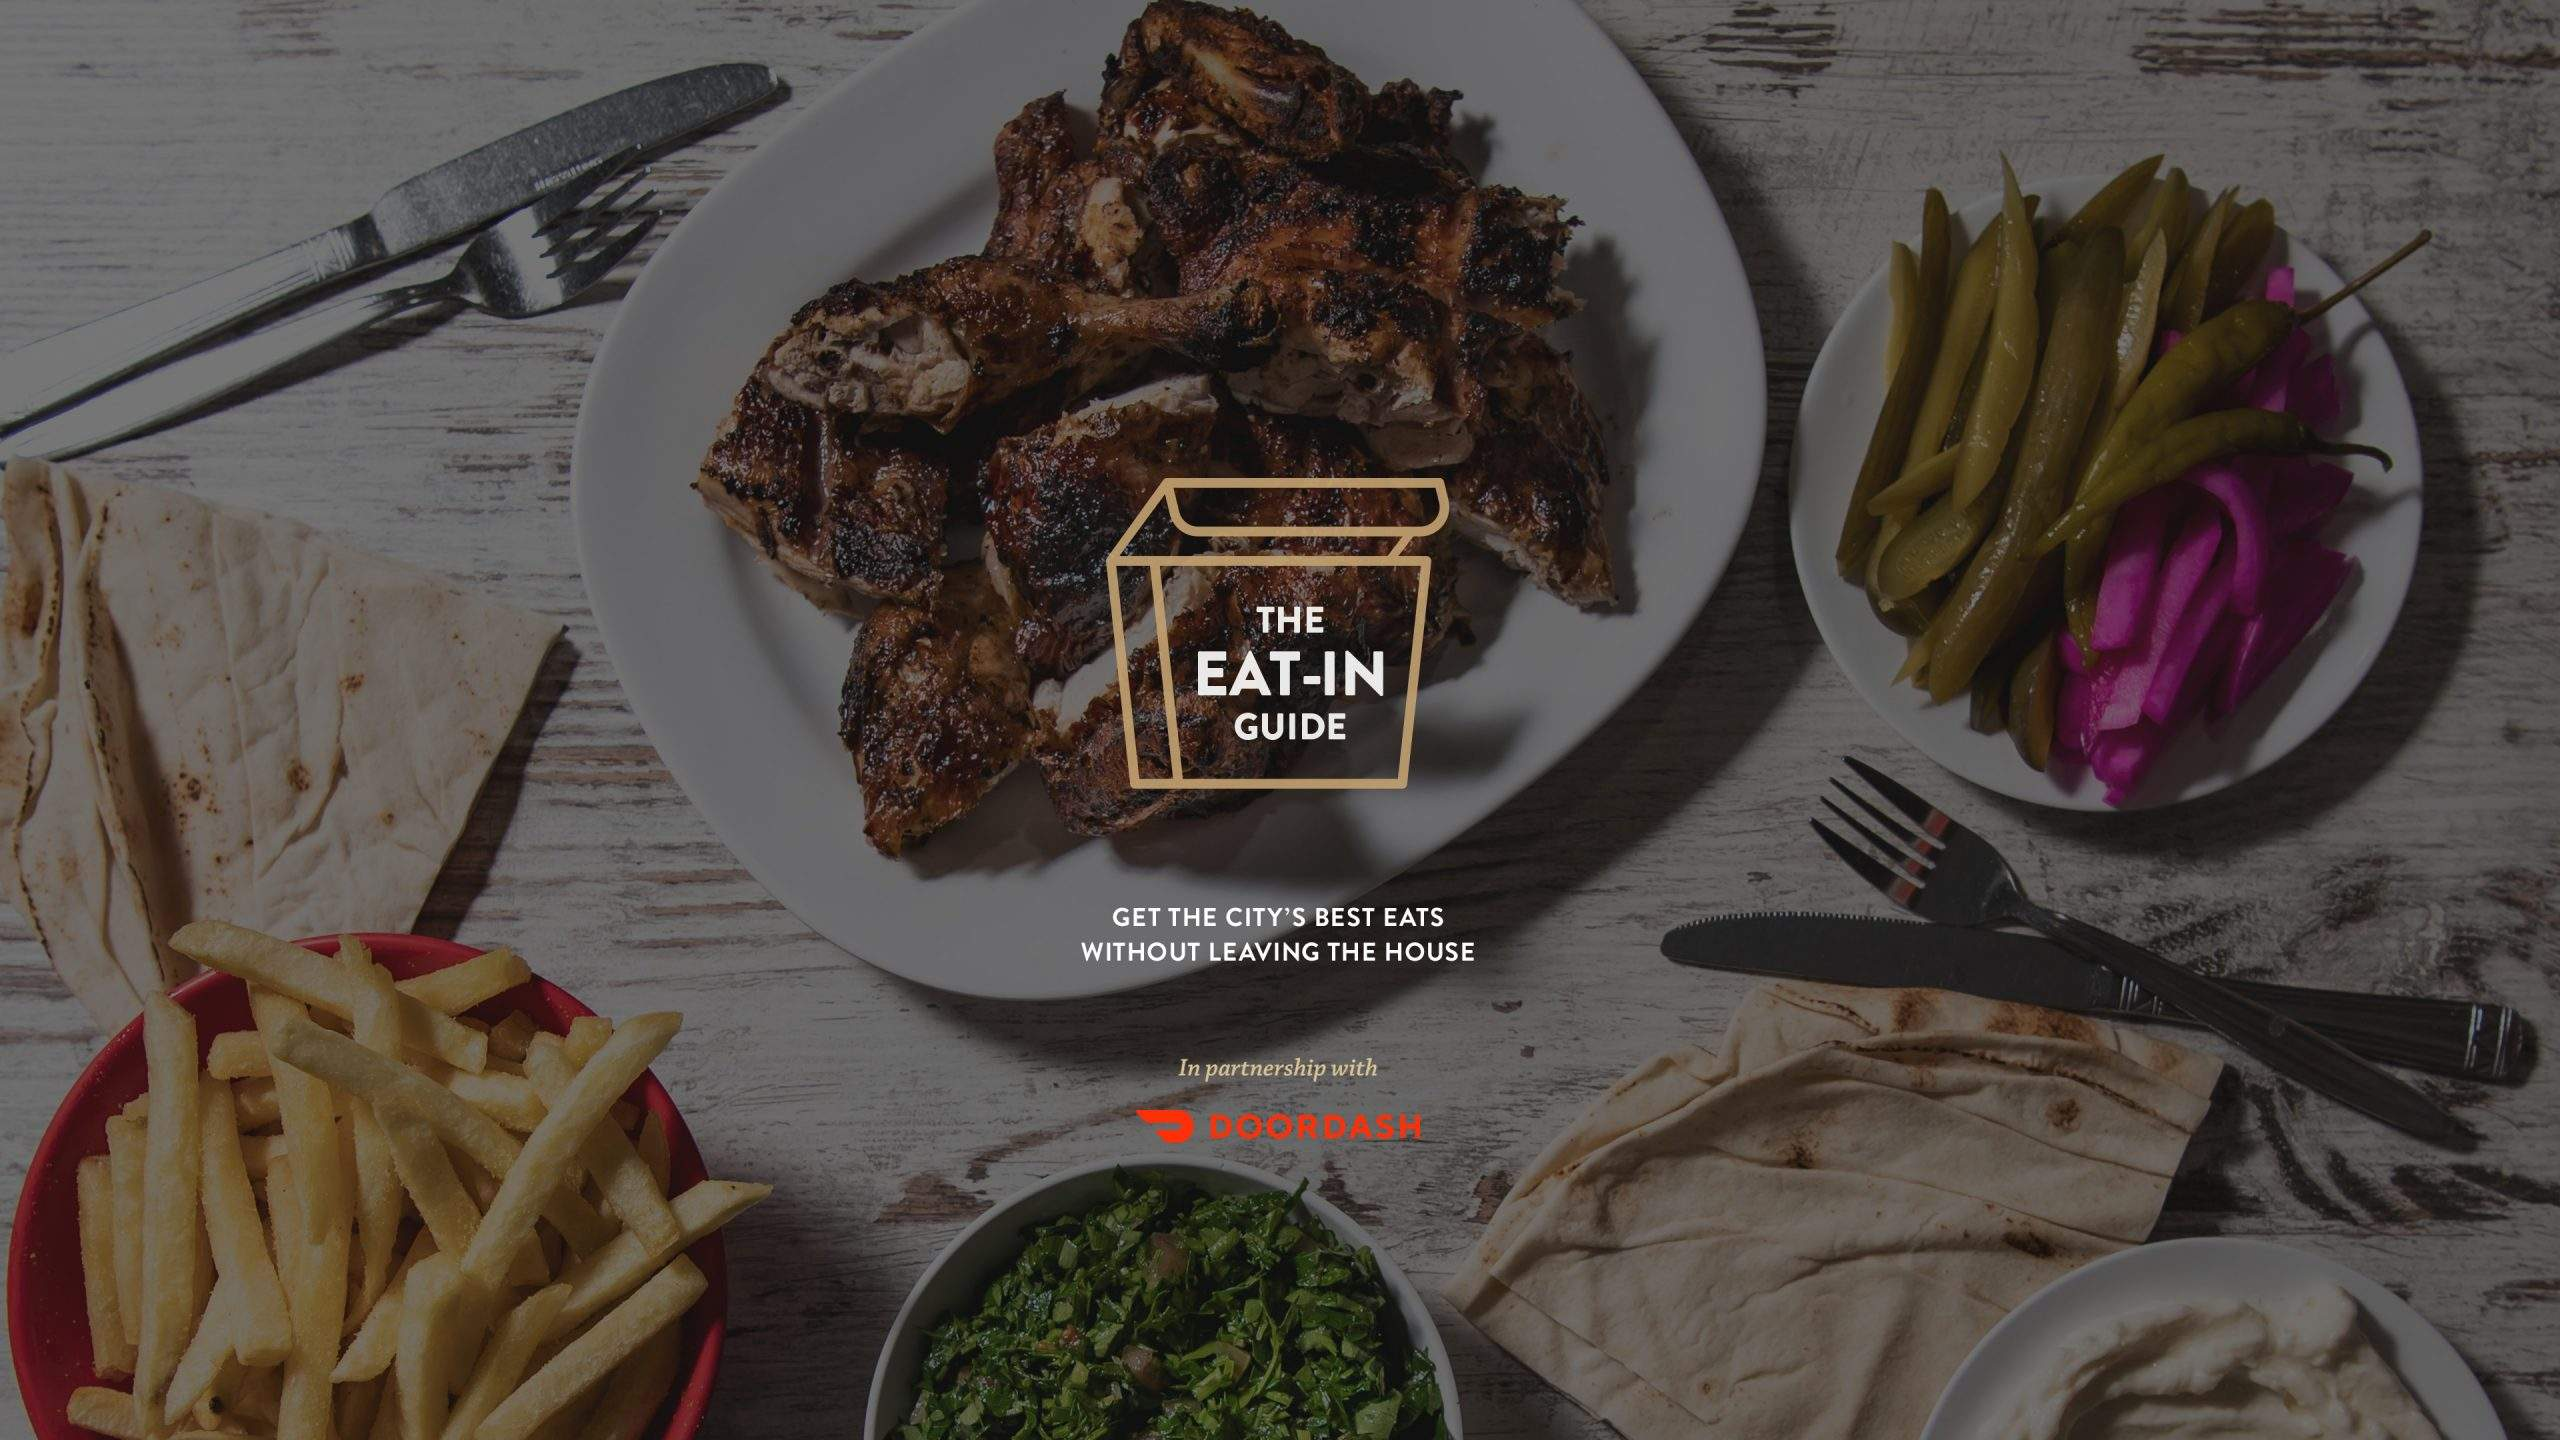 The Eat-In Guide